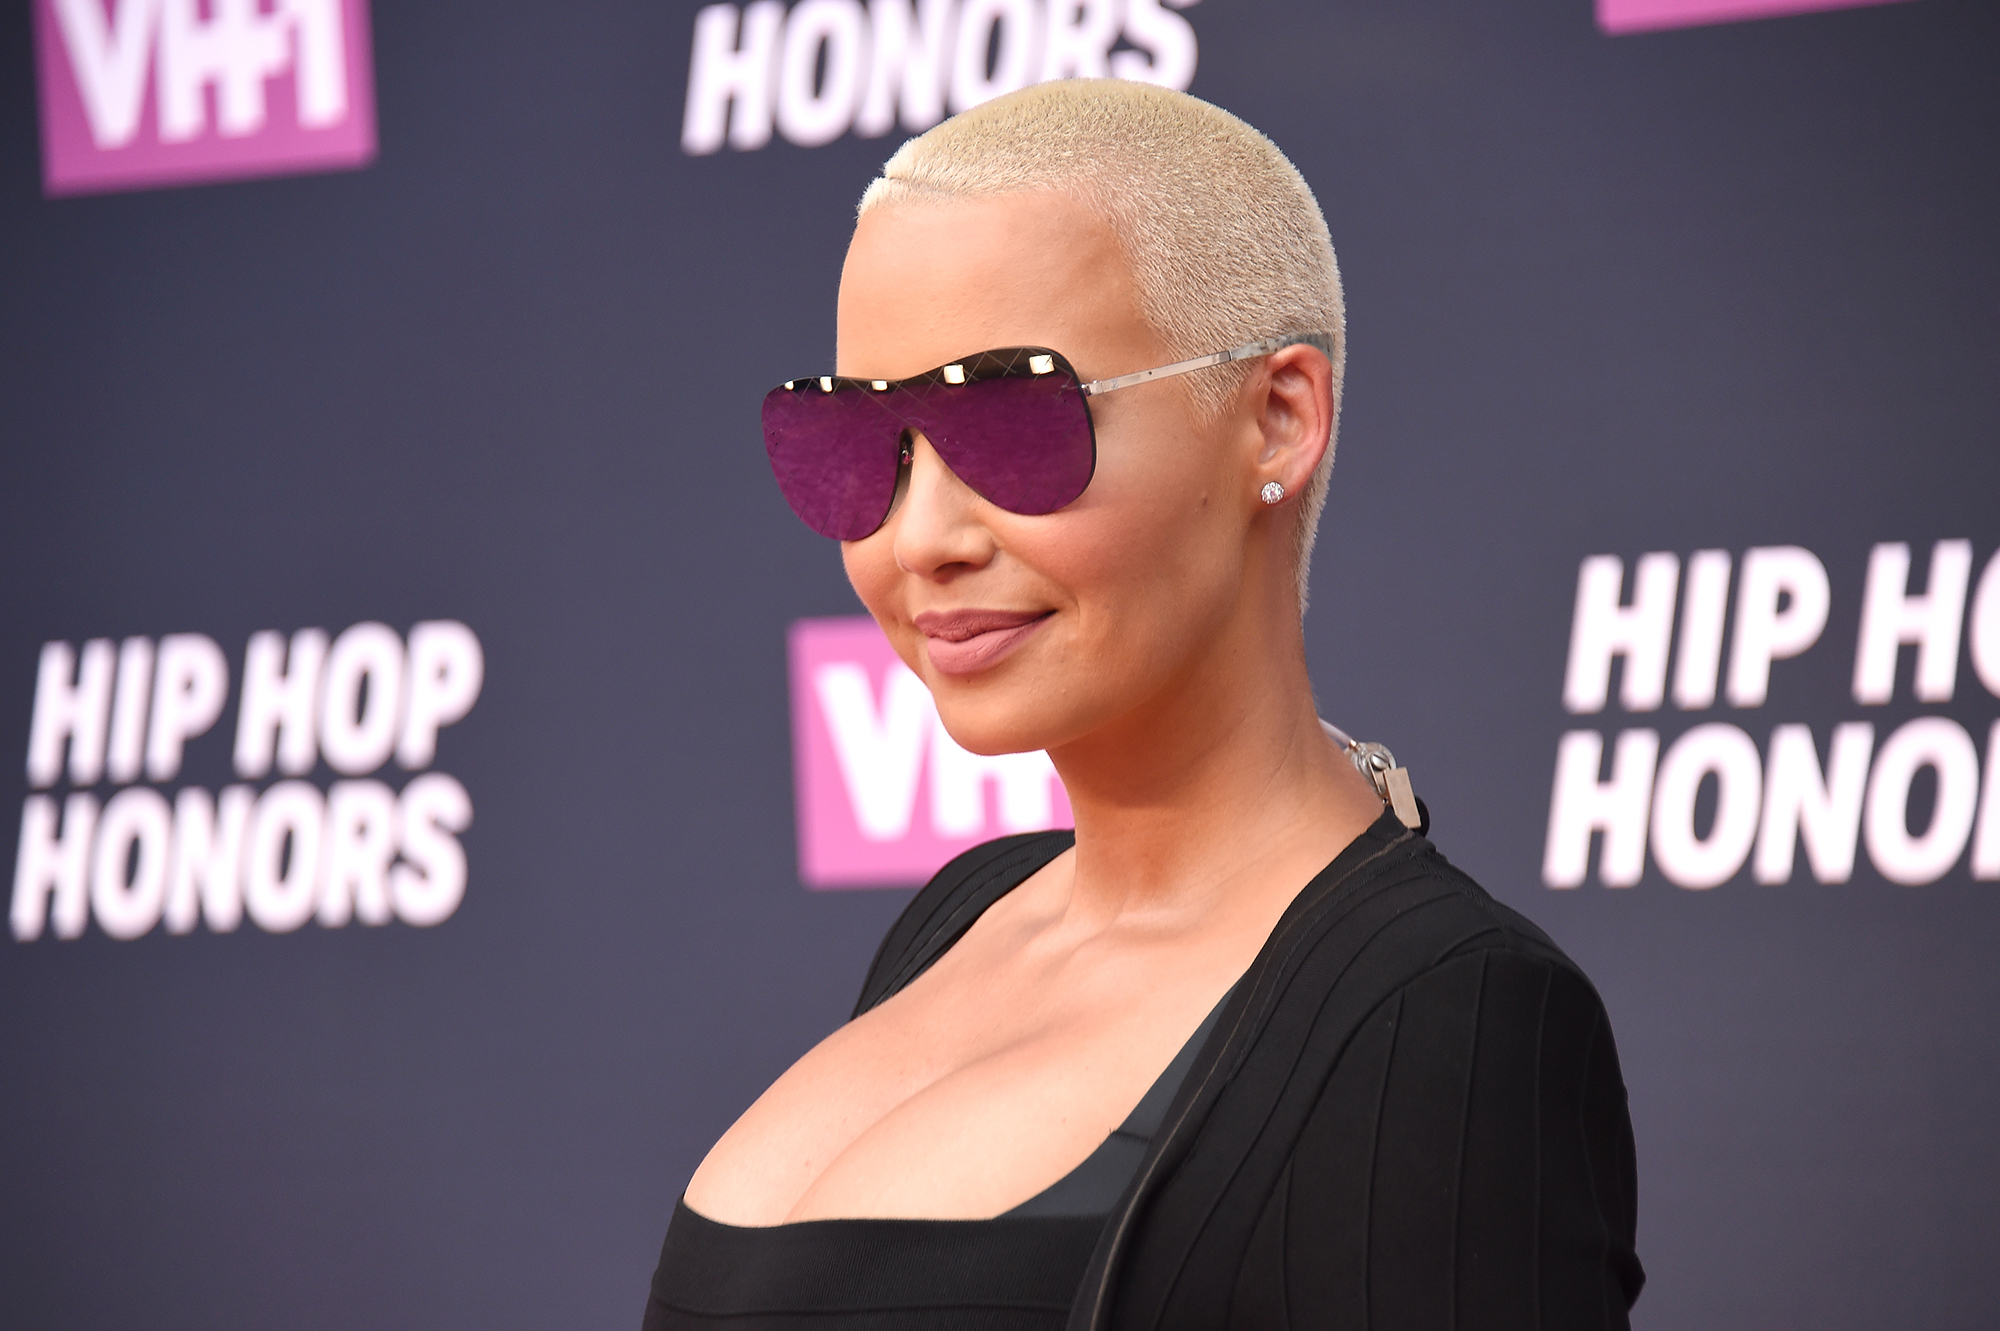 Amber Rose Says That Her New Boyfriend Is Perfect For Her And Fans Believes That She's Competing With Blac Chyna To See Who Can Have The Most Boyfriends In 2018